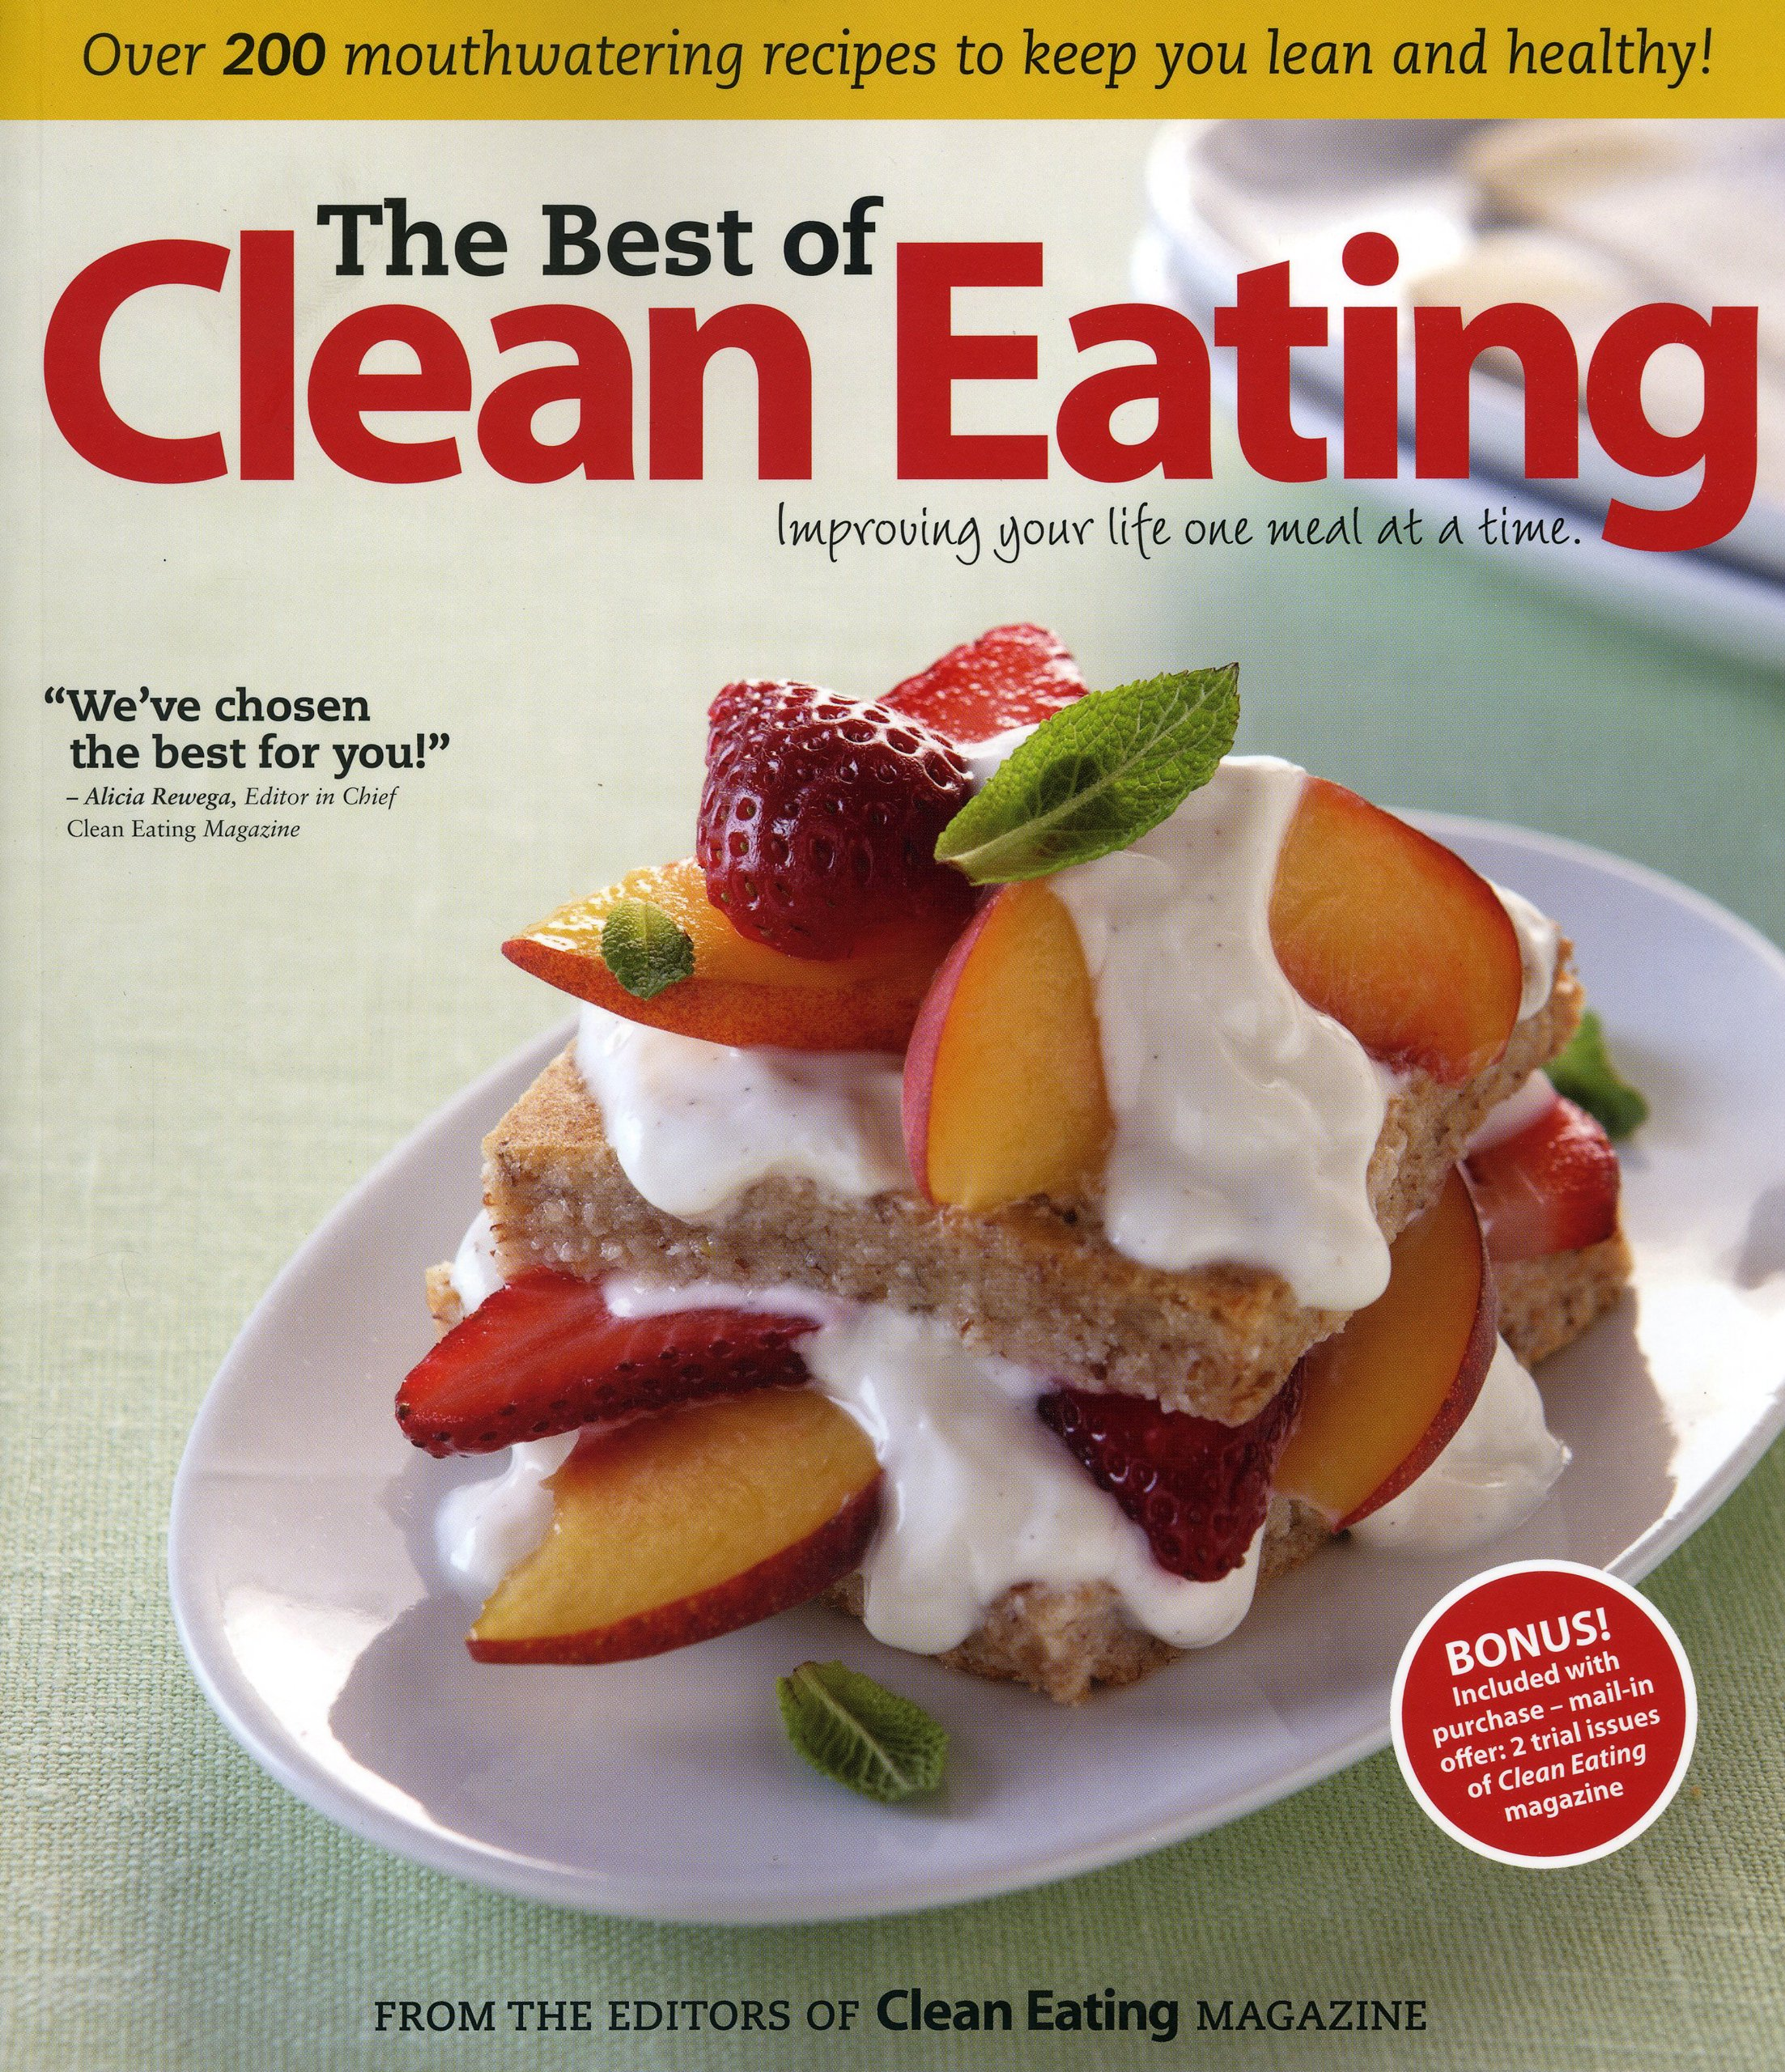 The best of clean eating over 200 mouthwatering recipes to keep the best of clean eating over 200 mouthwatering recipes to keep you lean and healthy editors of clean eating magazine 9781552100851 amazon books forumfinder Gallery